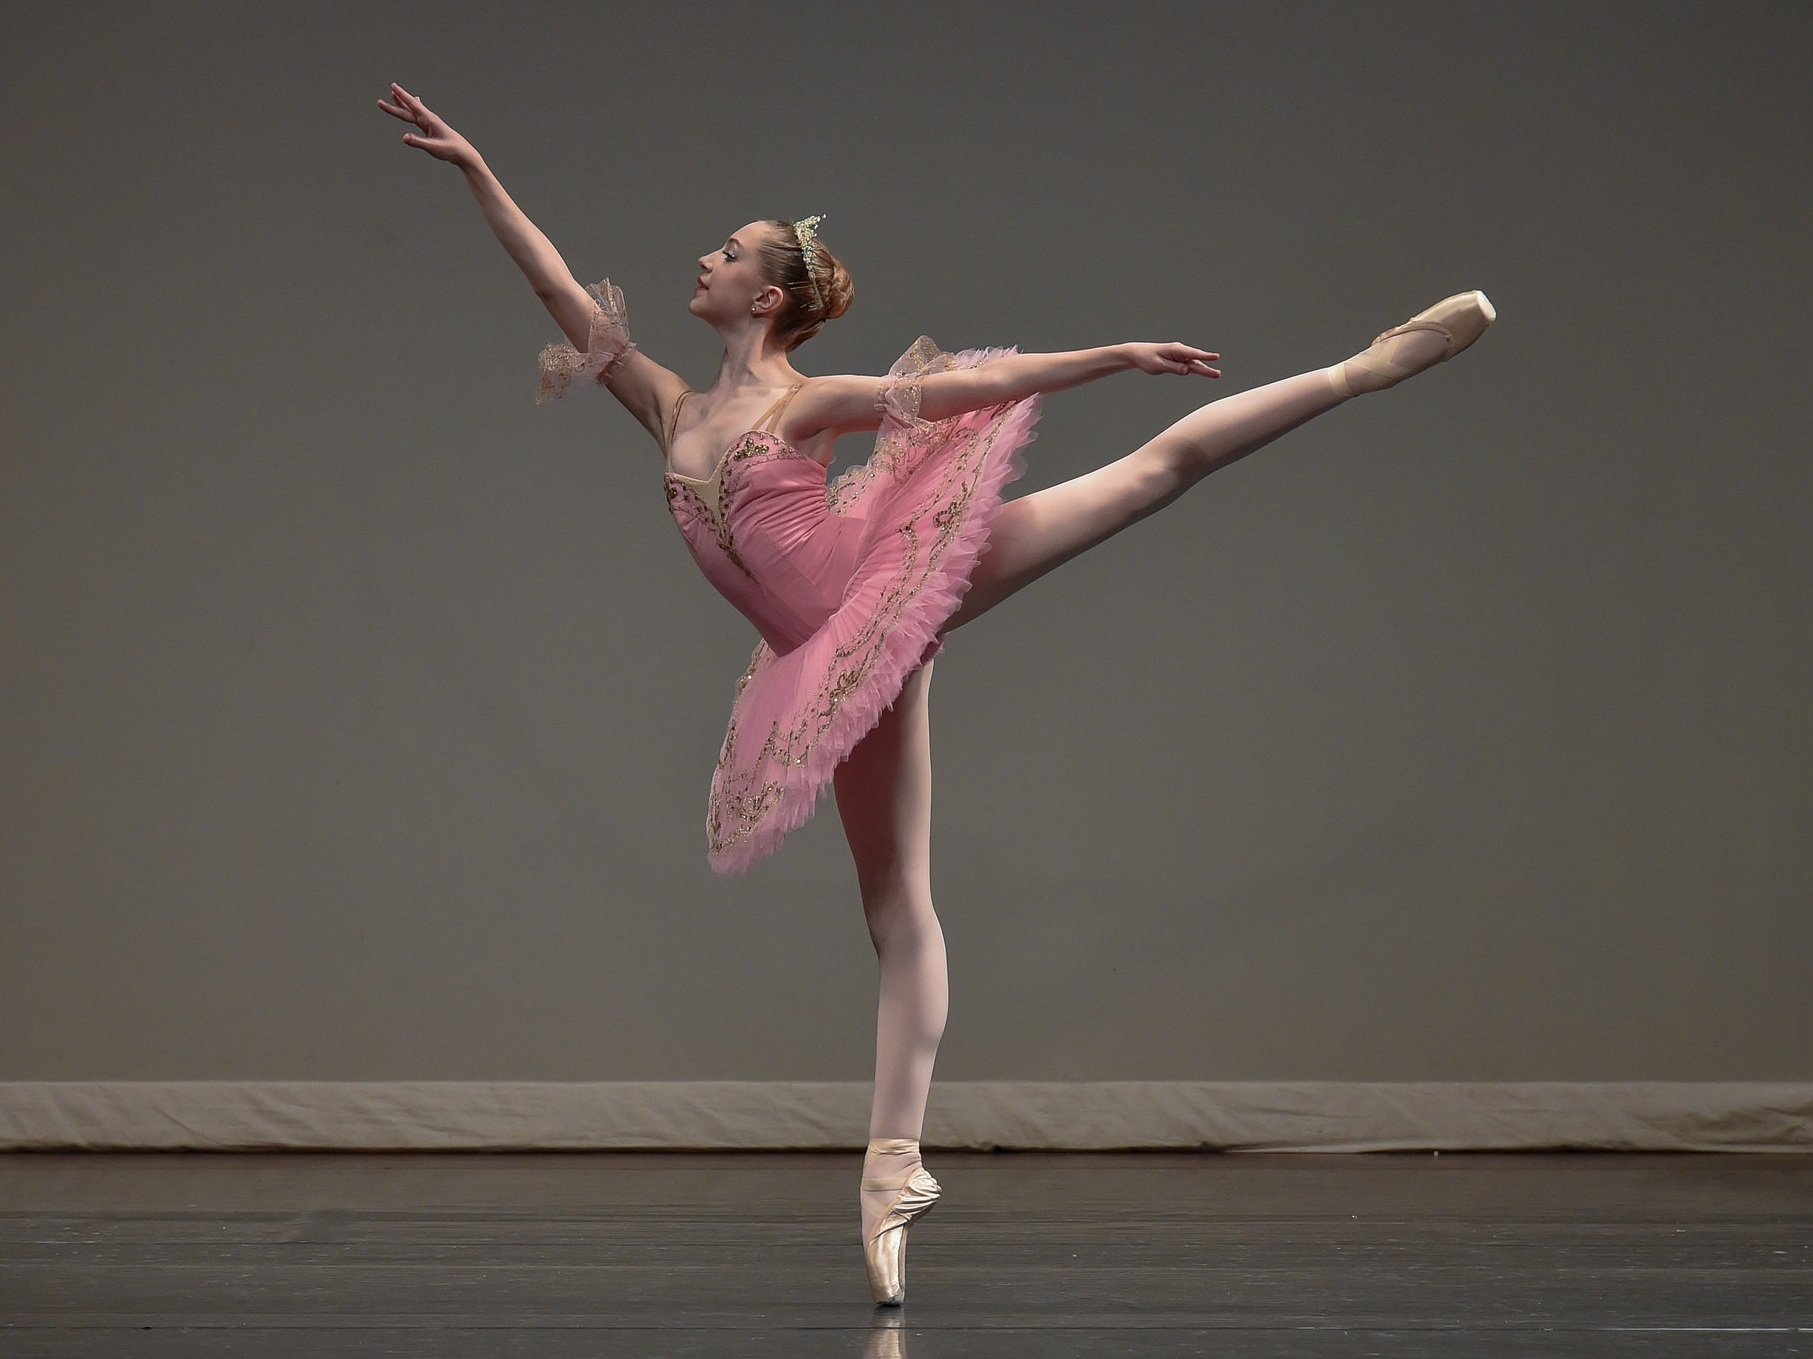 Lucy Hassmann was recognized as the Youth America Grand Prix Winner at the YAGP Chicago Regional Competition in 2018. Lucy was also the first female dancer from San Antonio to be invited to represent the United States in the International Ballet Competition USA in Jackson Mississippi in June 2018. Lucy was also personally invited, along with DCSA dancer Mackenzie Kirsch to compete in the Vaganova Prix 2018.